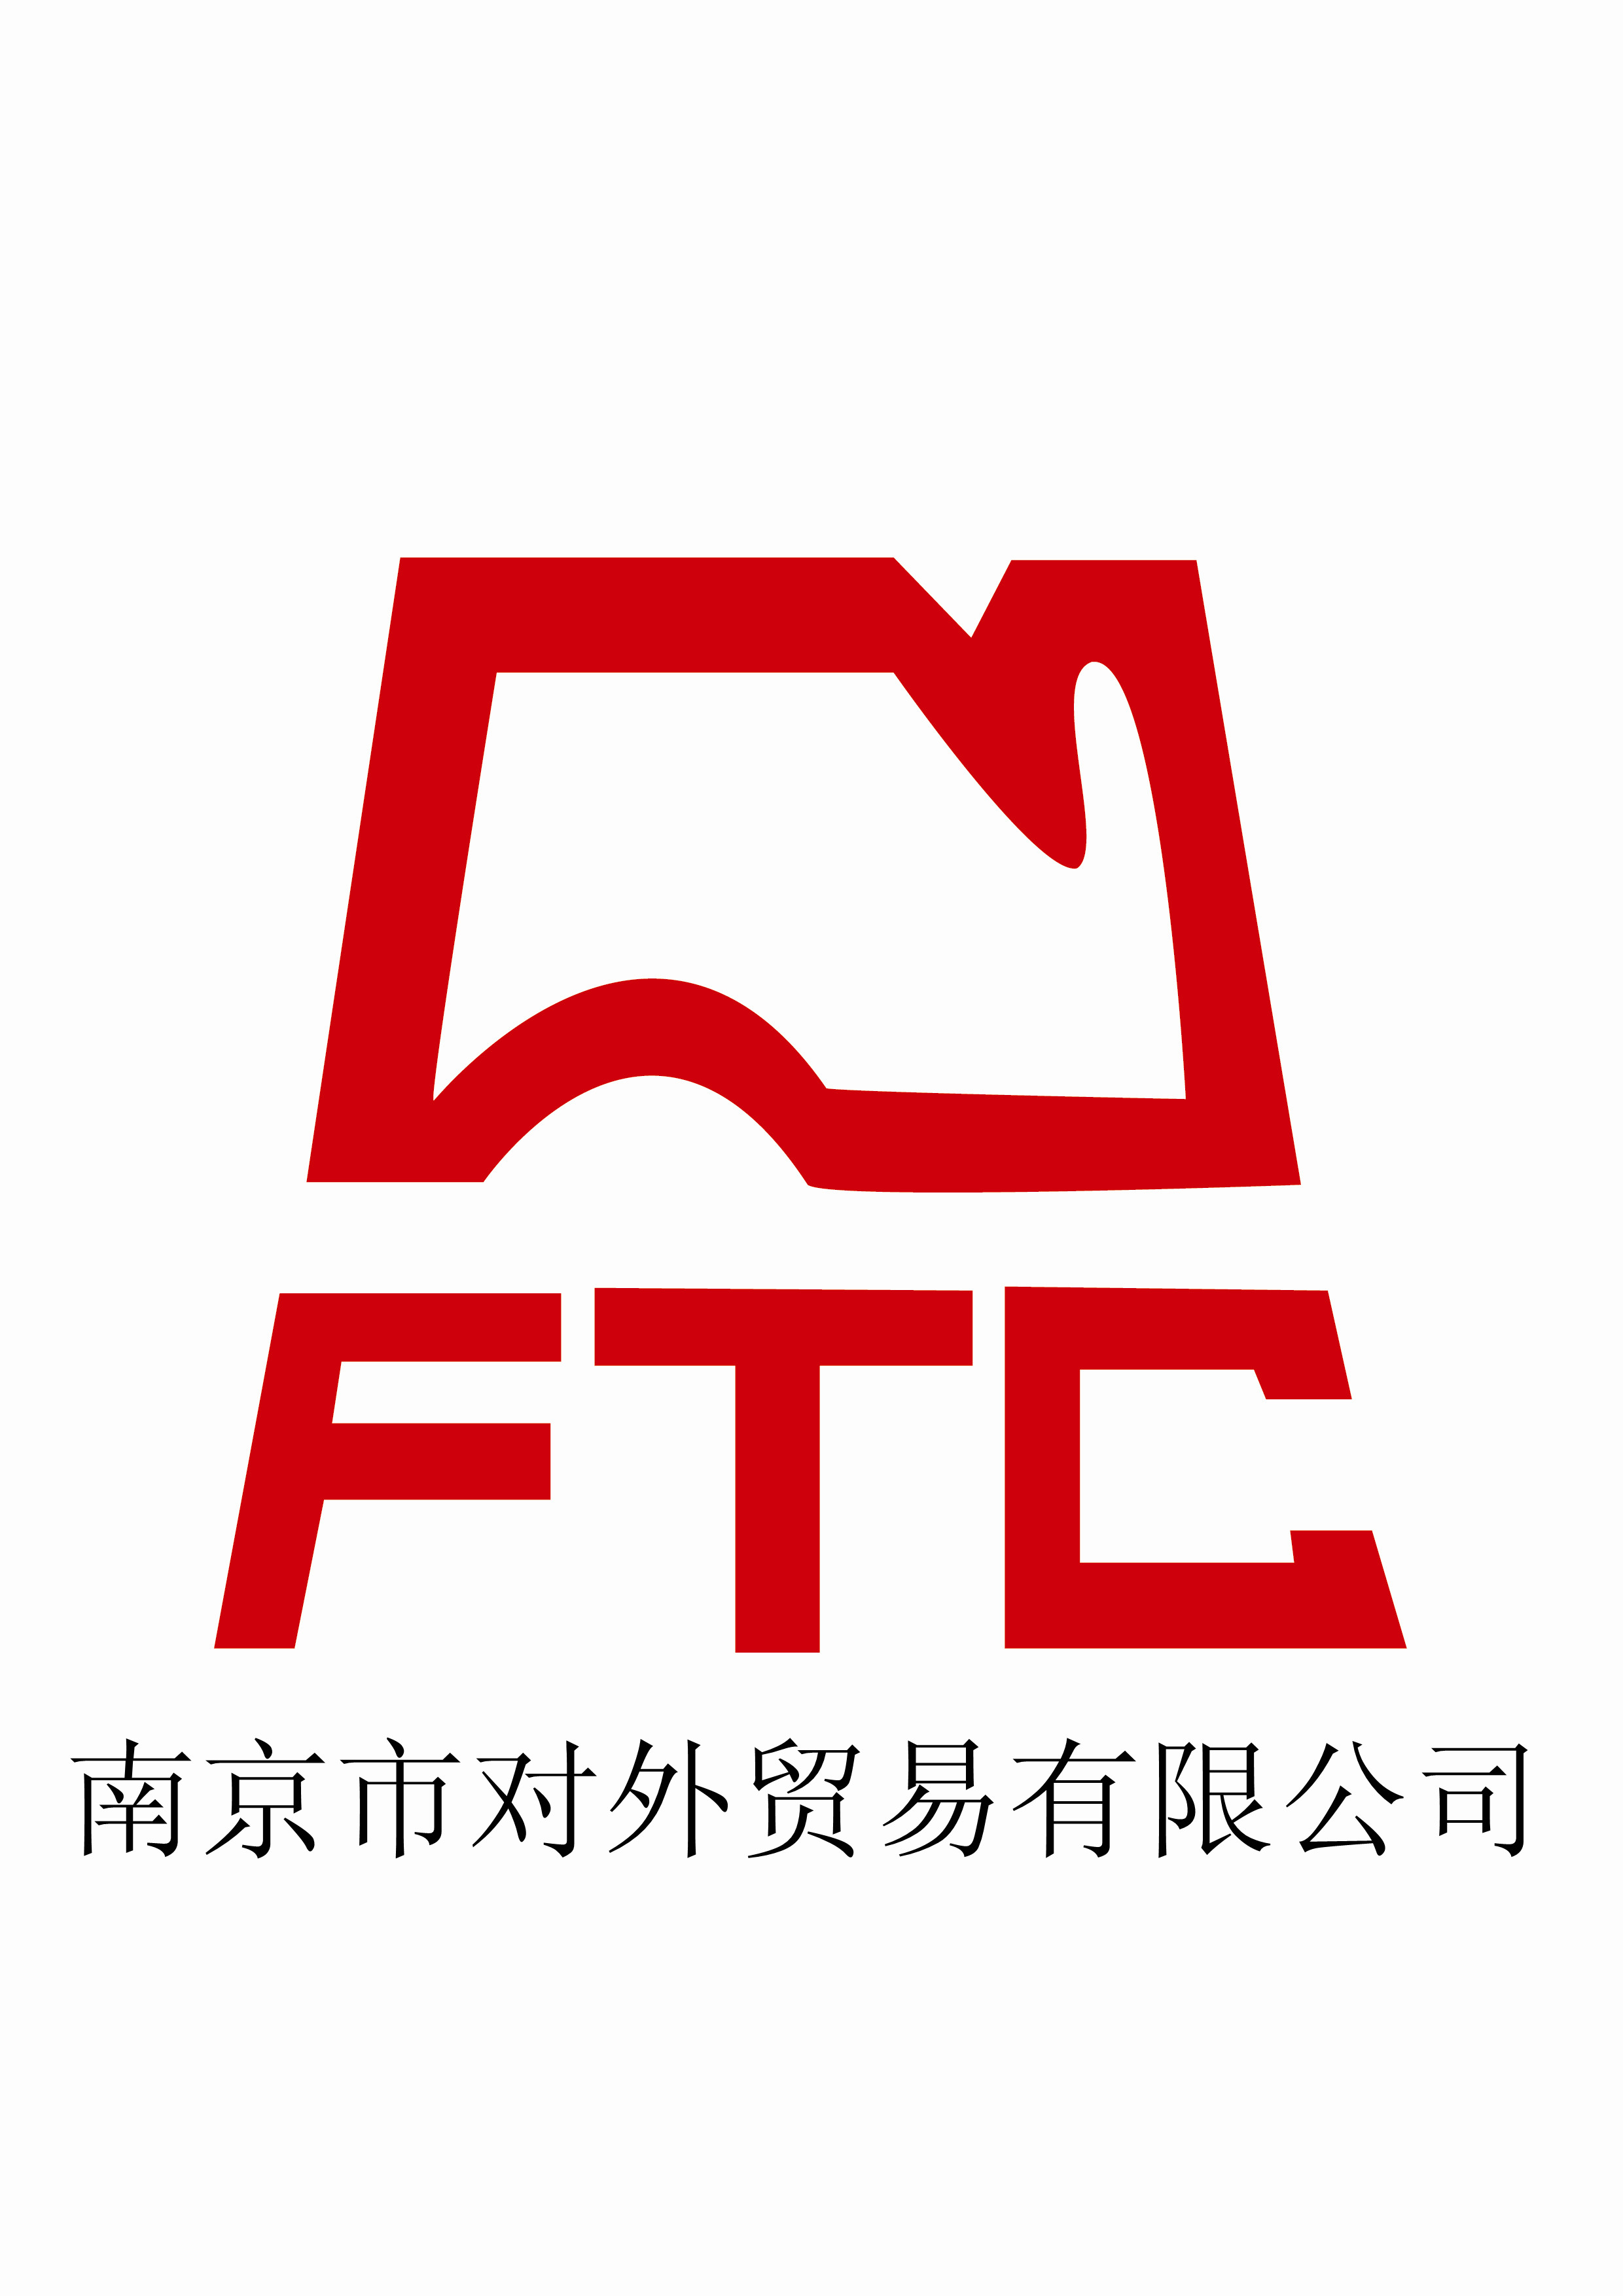 NANJING FOREIGN TRADE CO.,LTD